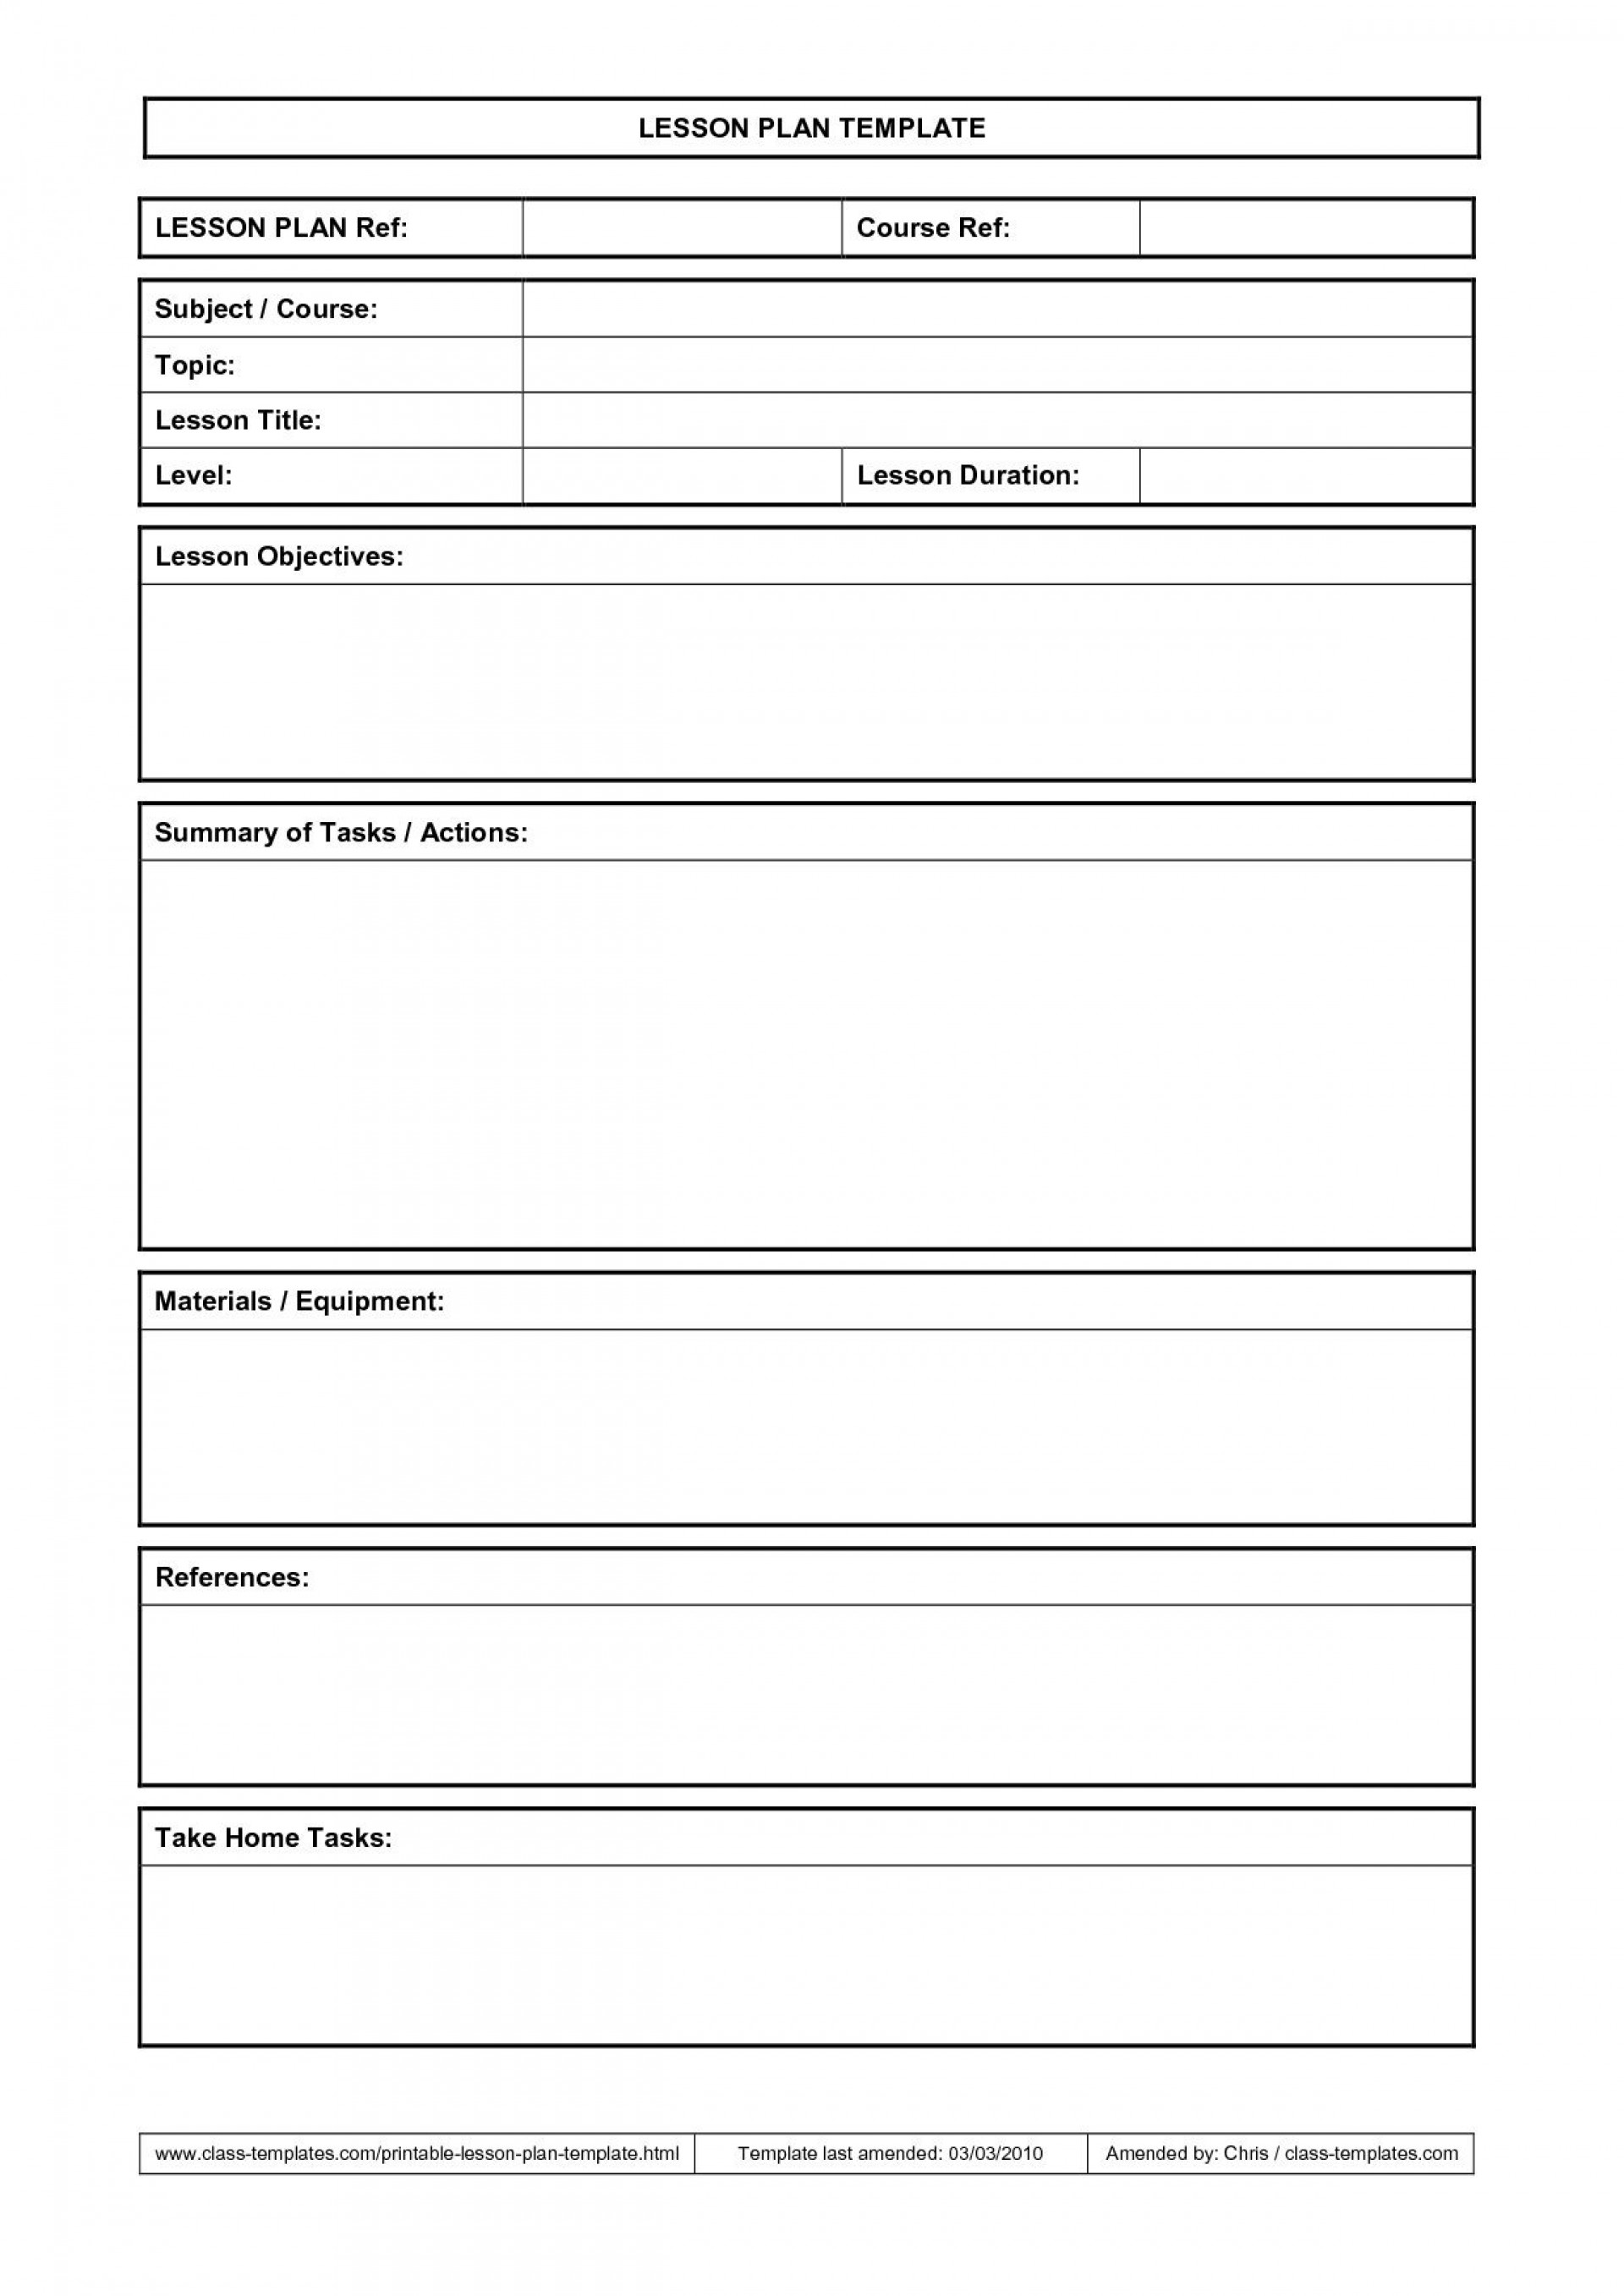 003 Breathtaking Elementary School Lesson Plan Template Idea  Format Science Teacher1920